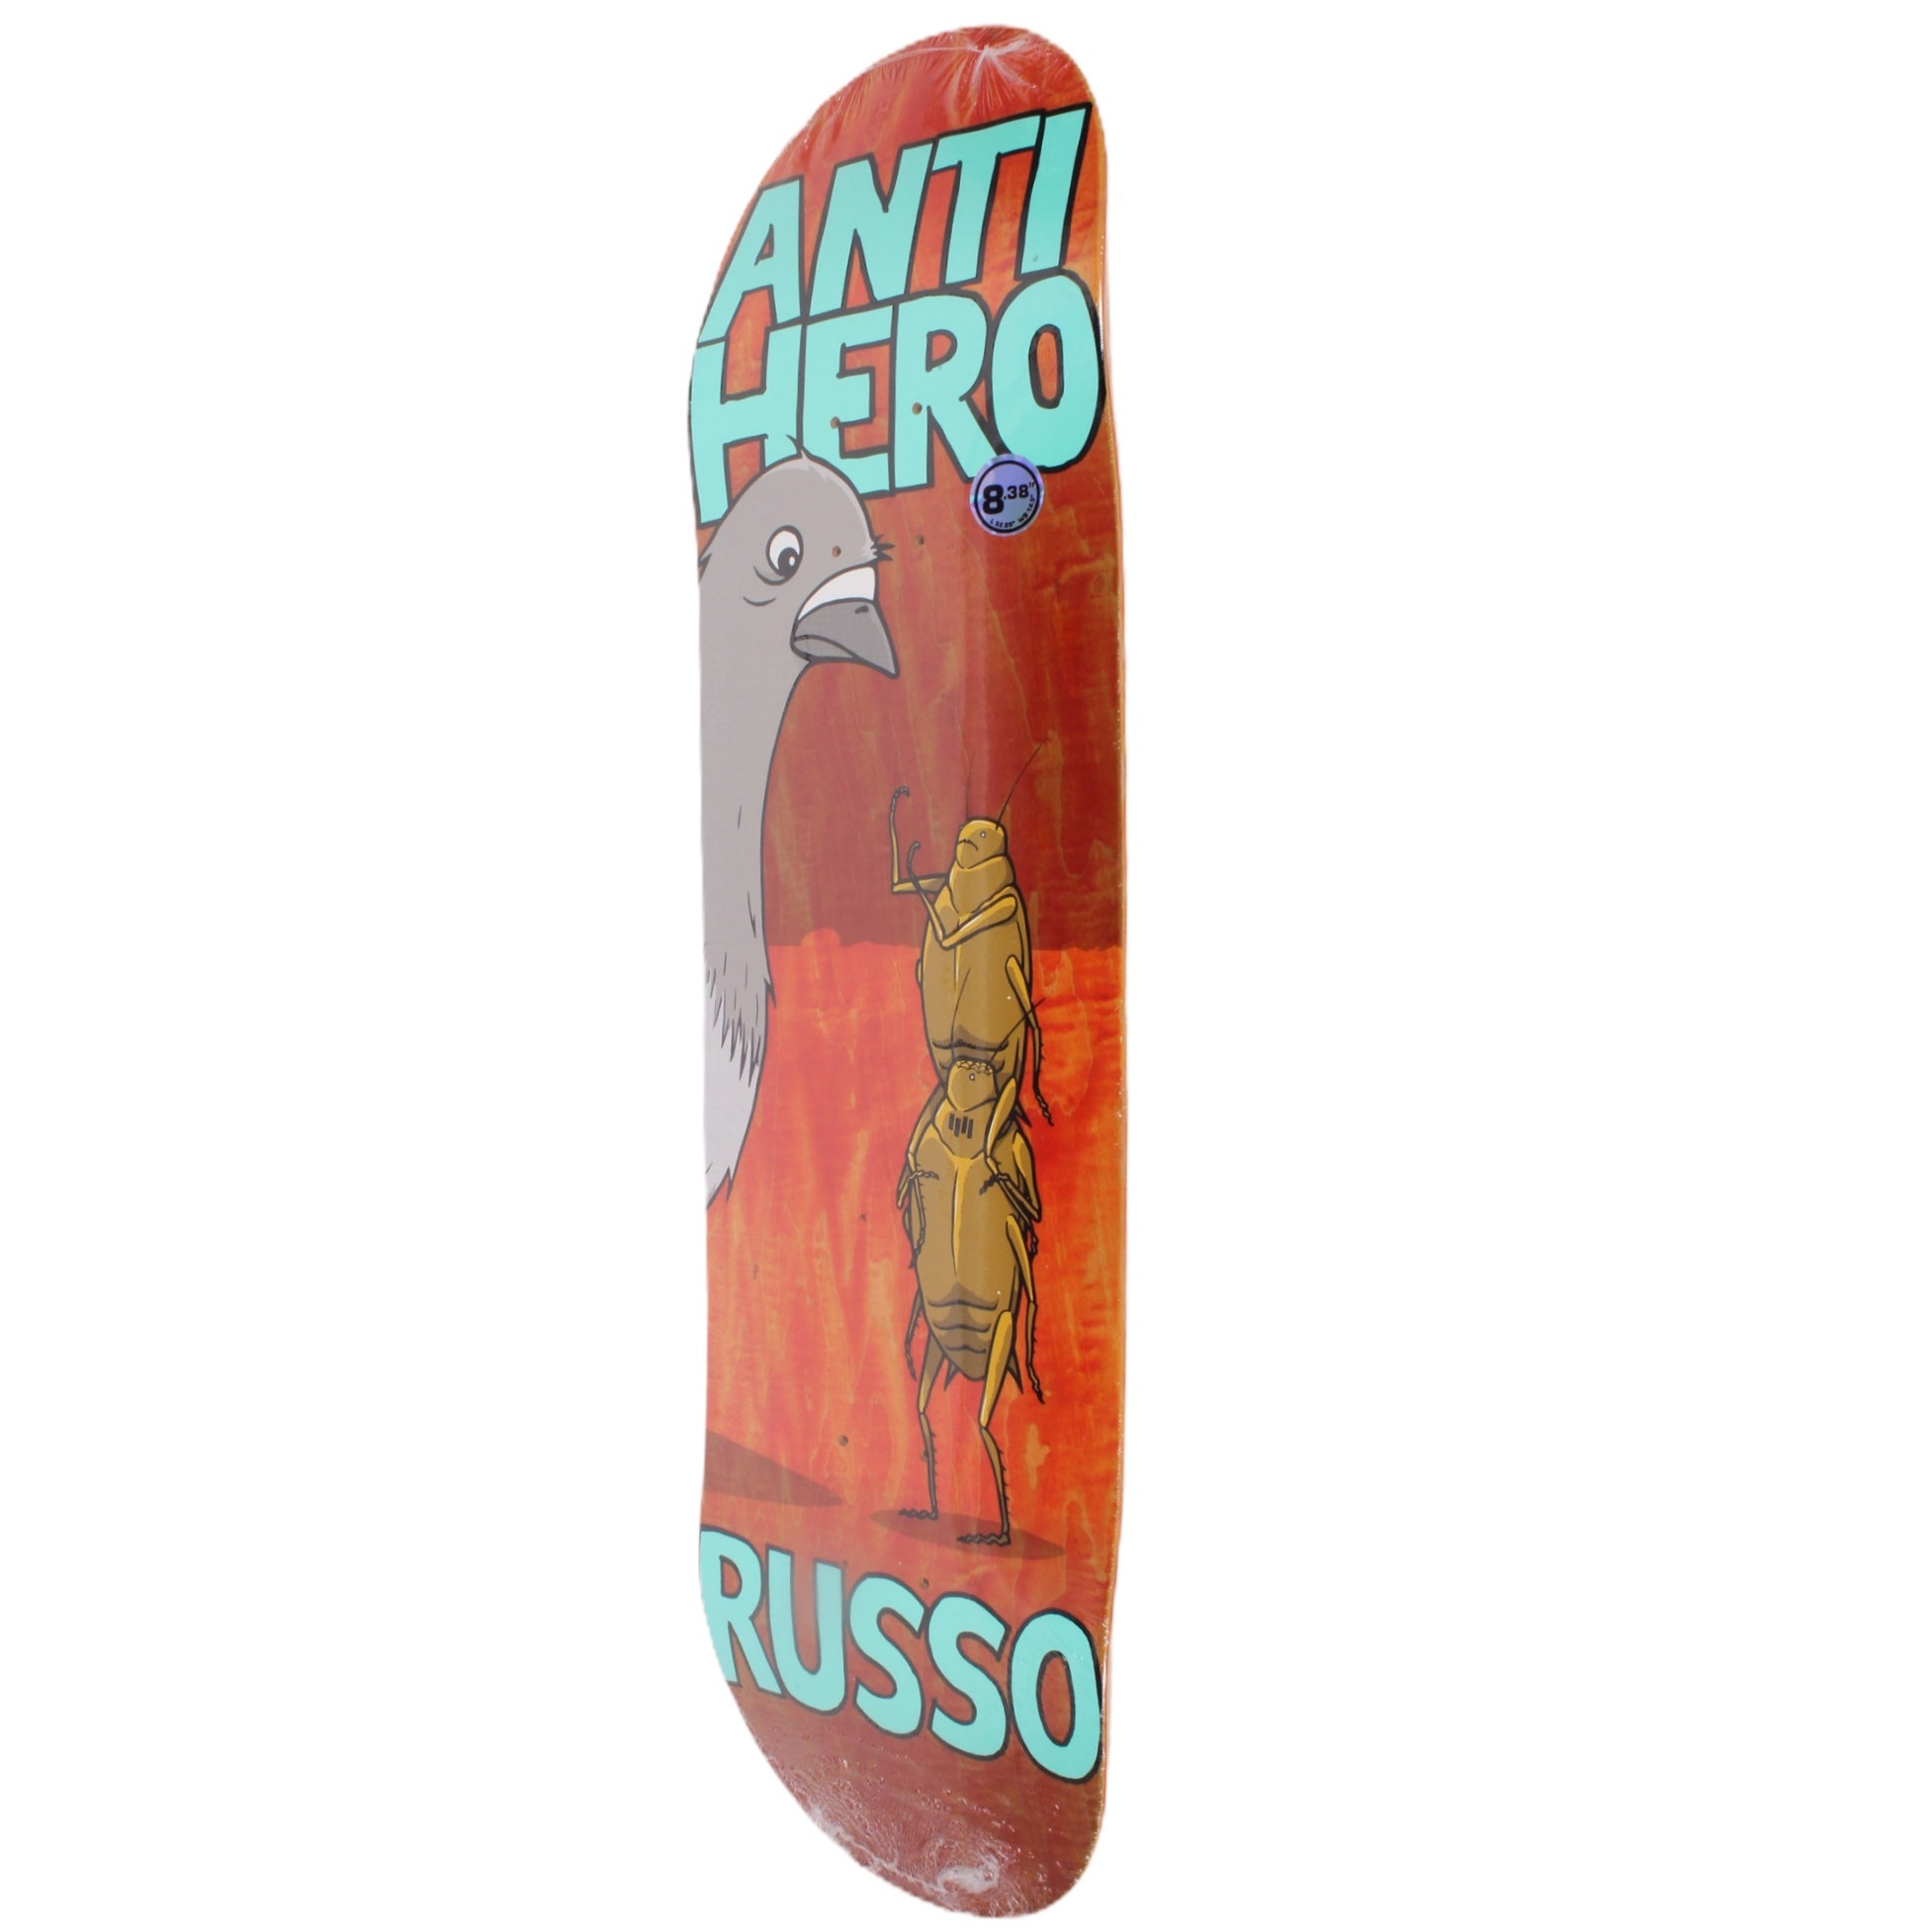 Overripe Anti Hero Deck Roaches Russo 2105